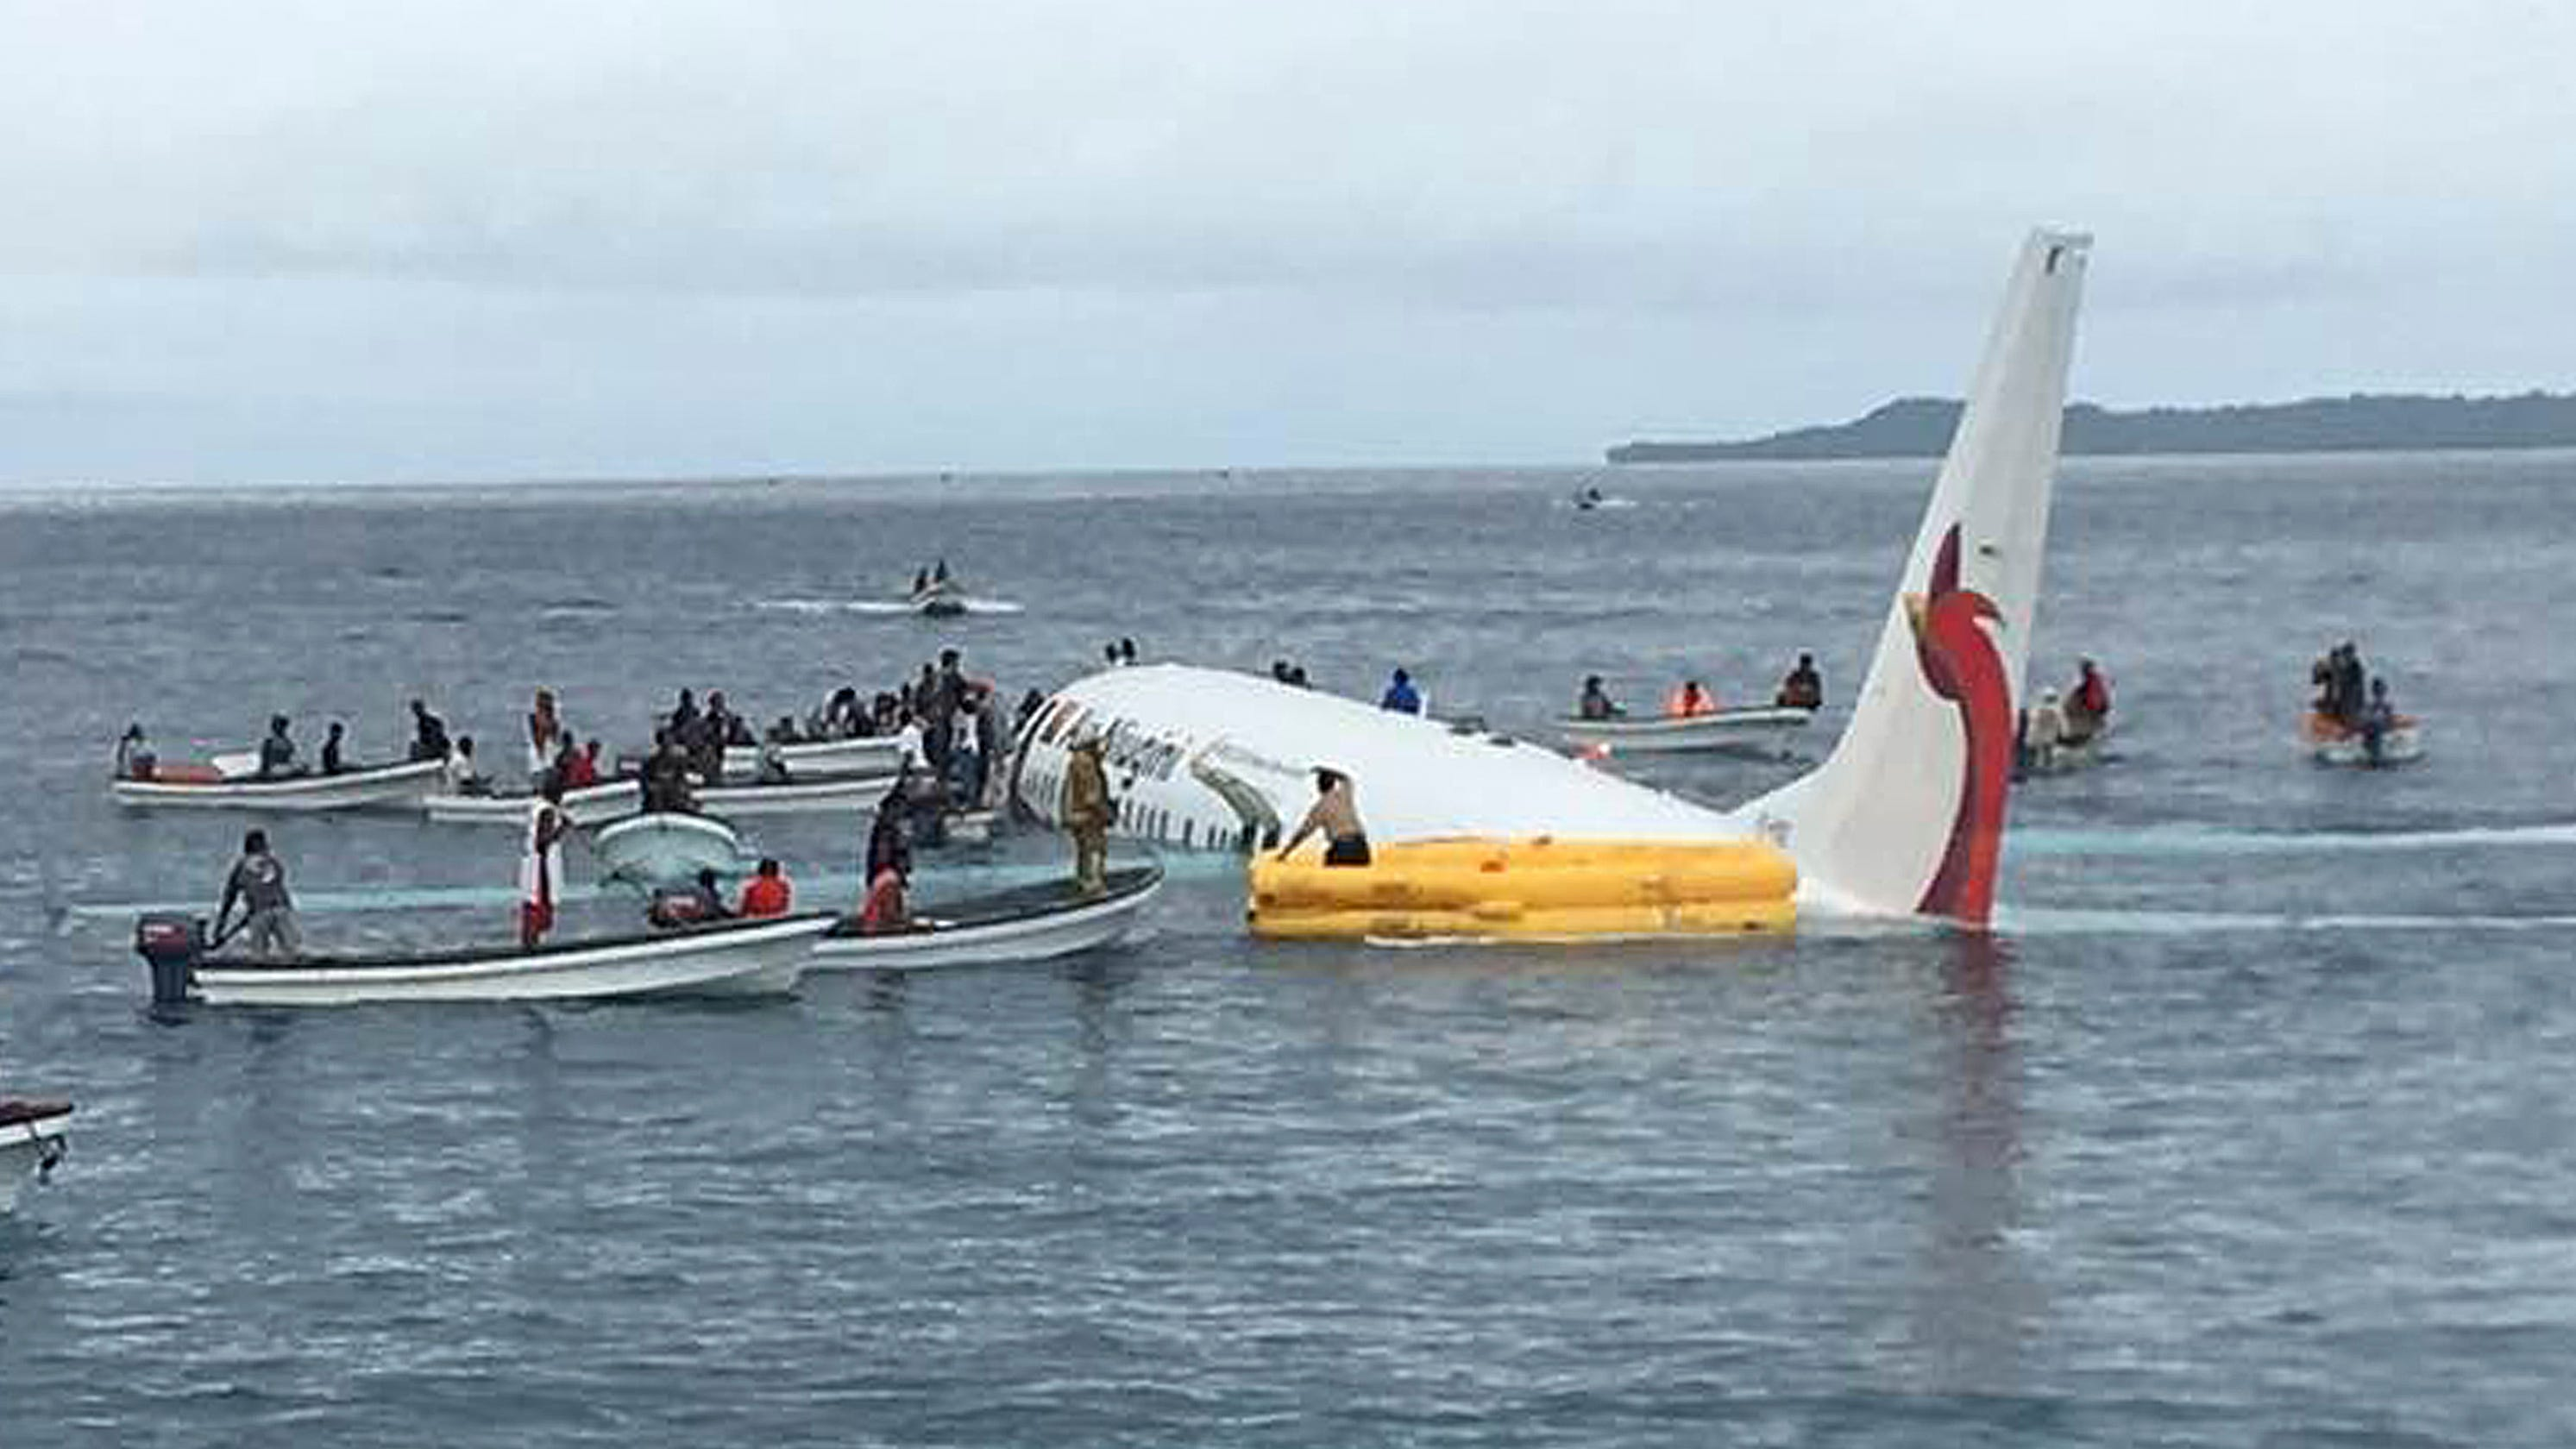 air niugini crash passengers and crew safe as plane lands in sea